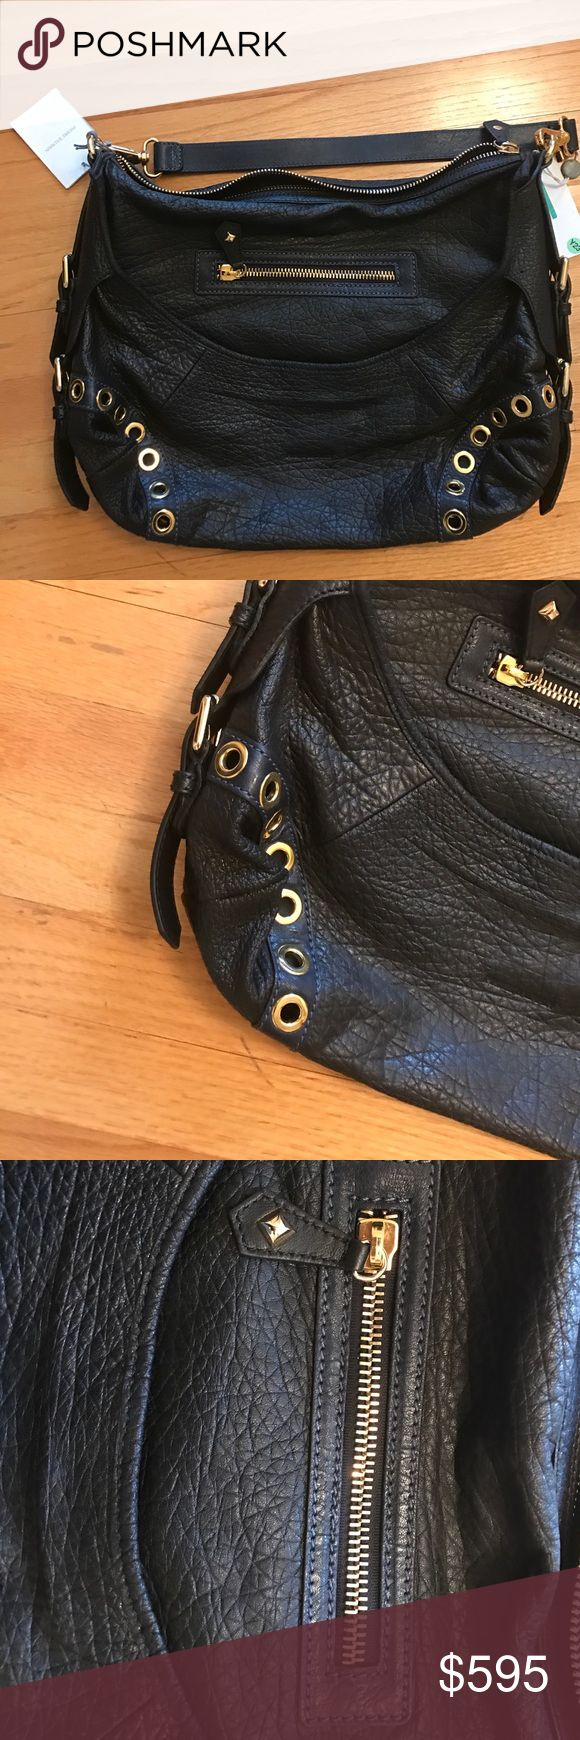 New Pierre Balmain handbag Pierre Balmain large handbag from 2014 collection. Soft textured leather, logo embossed on front but very subtle as you can see in pic. Zip closure. Removeable handle. Measurements approximate. Beautiful bag. The first two pics are of bag which is currently on sale for $1400 so the retail was prob 2800. The rest of the pics are actual bag. Authentic.  I bought this bag as a special treat for myself, but its too  big for my petite frame.  Please feel free to message…